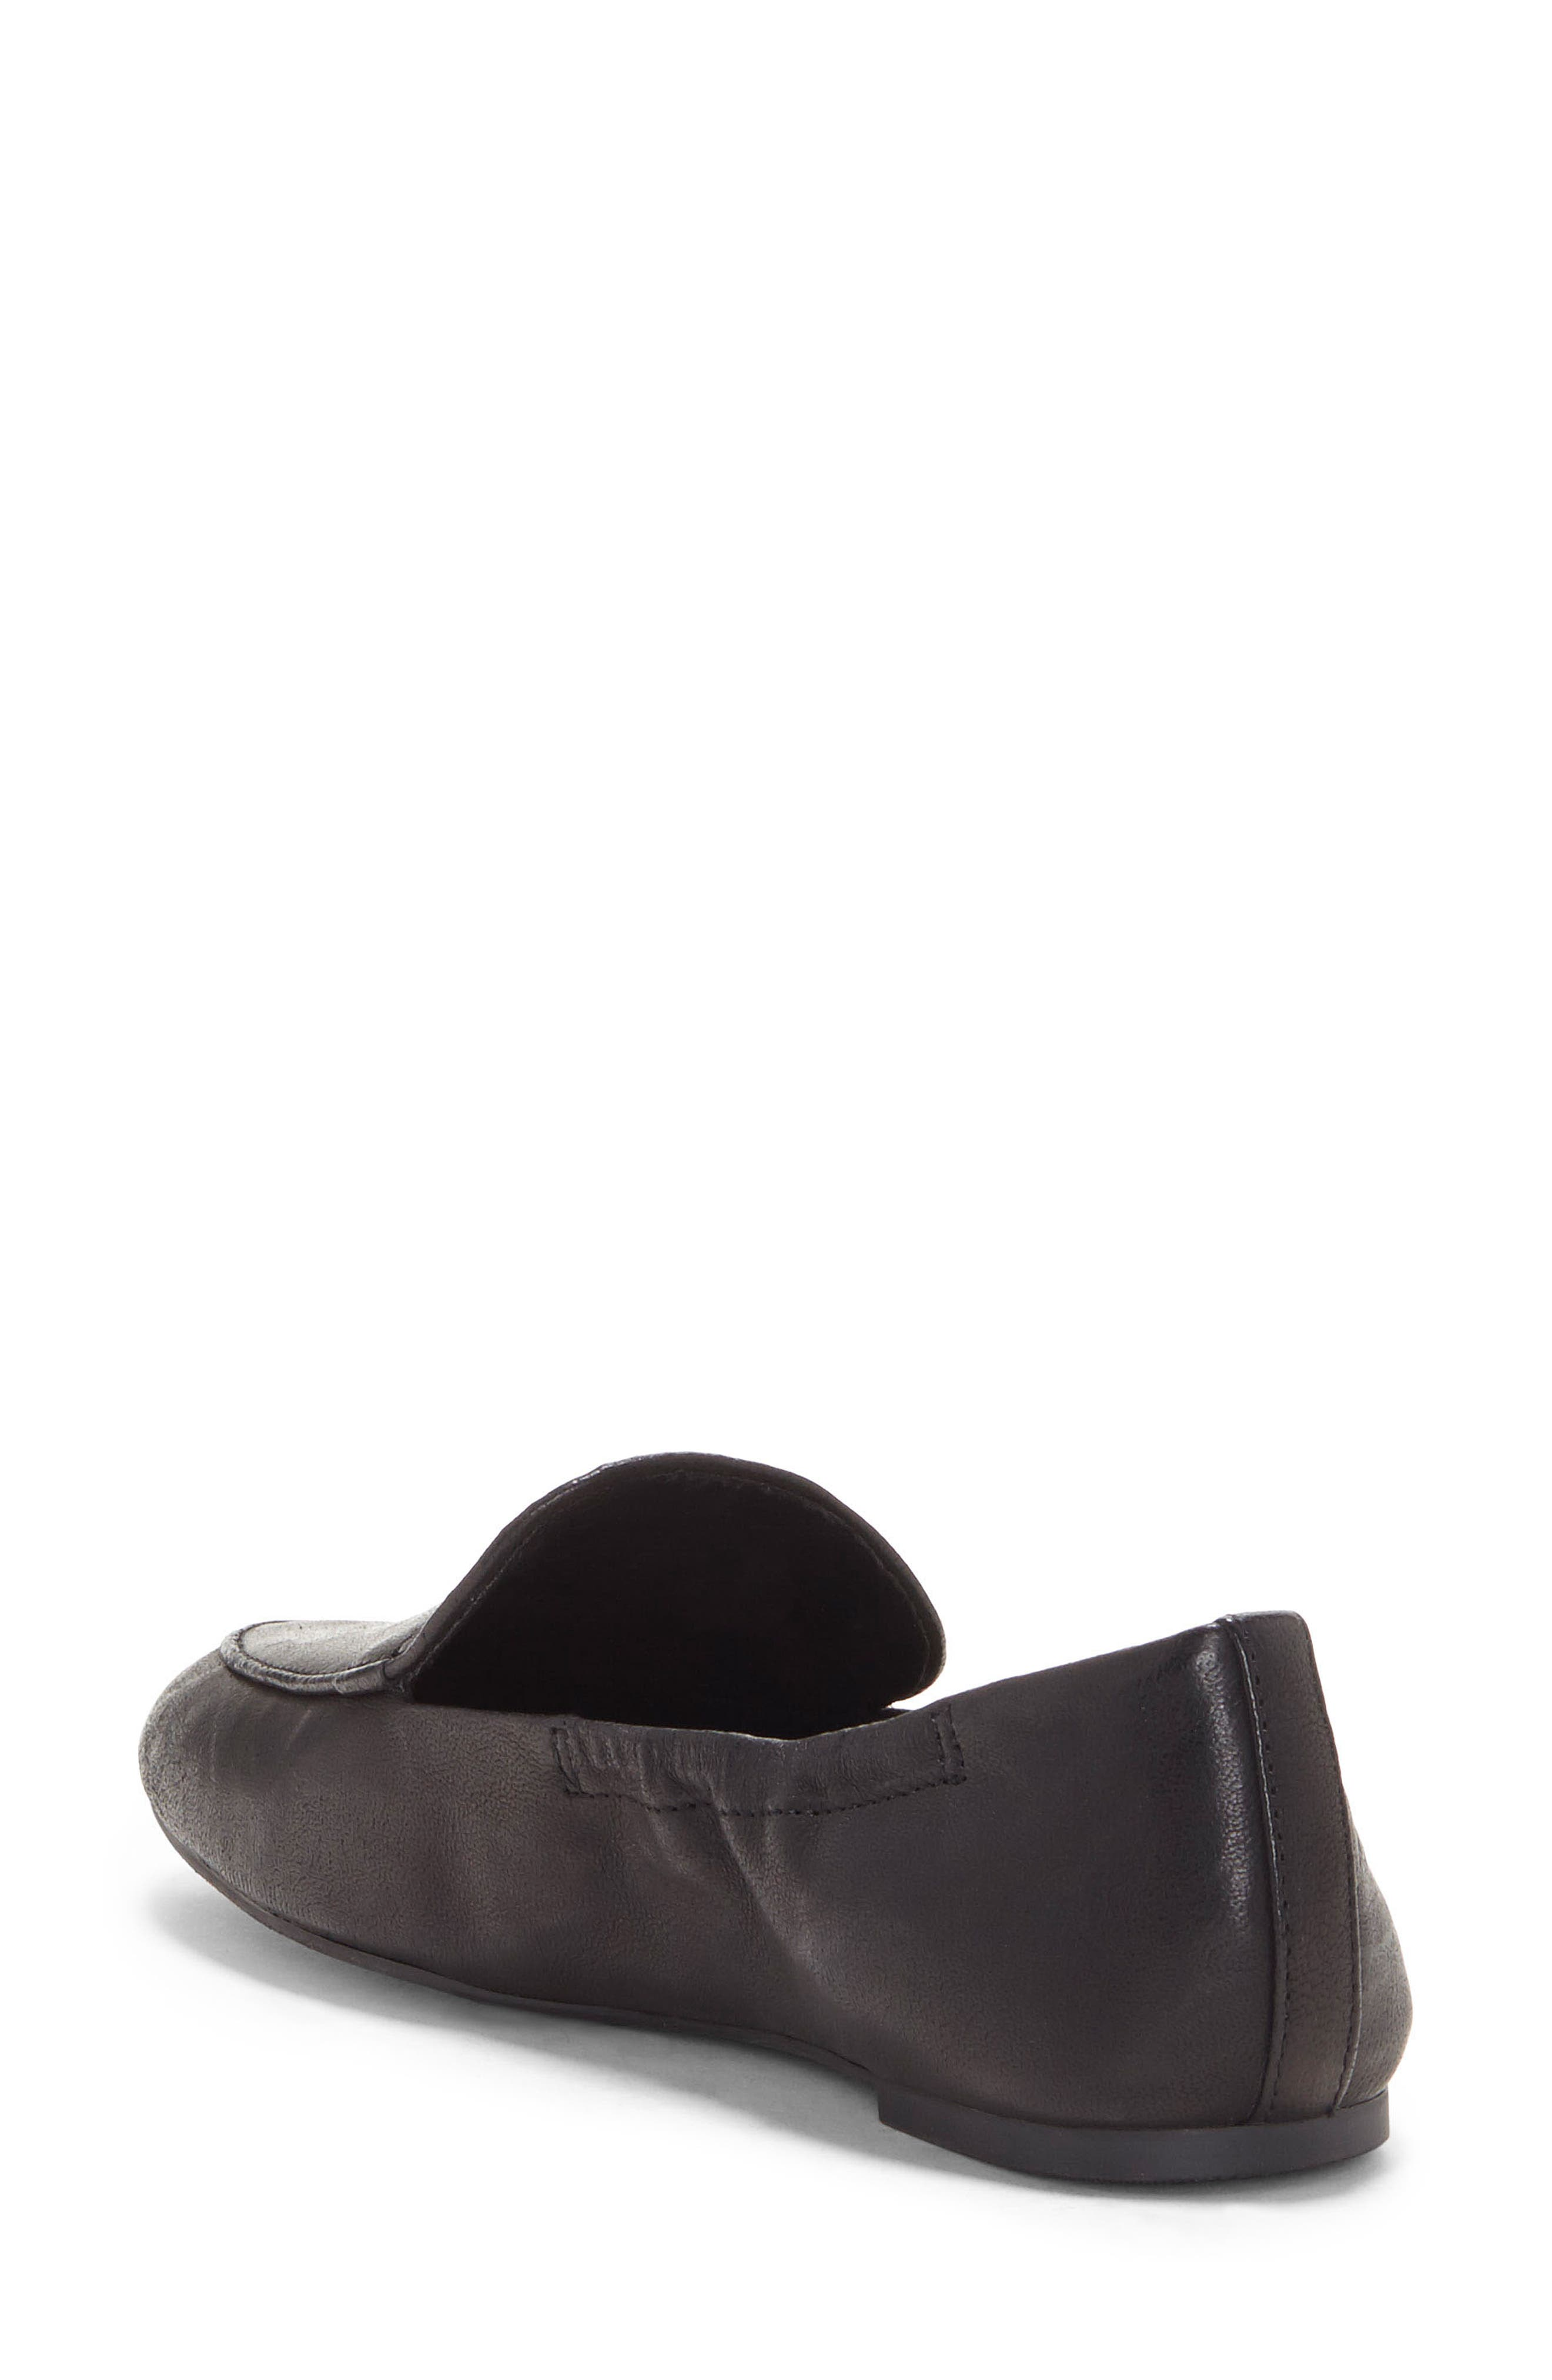 LUCKY BRAND, Bellana Loafer, Alternate thumbnail 2, color, BLACK LEATHER